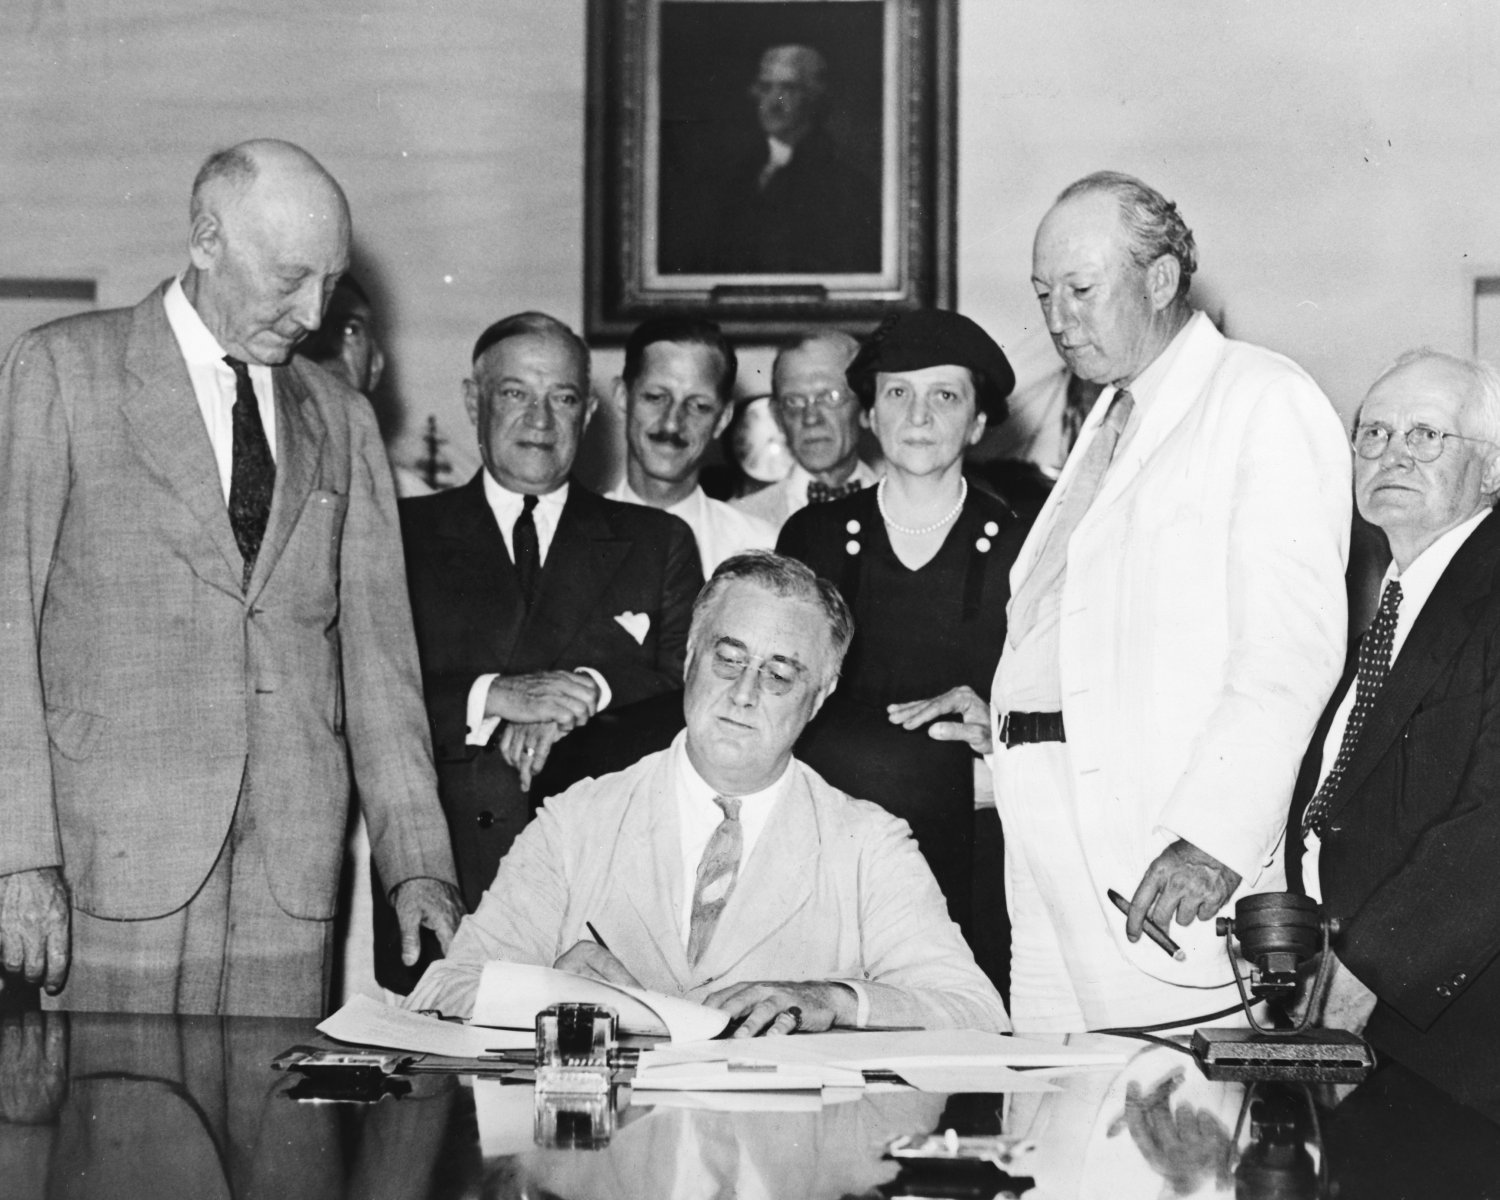 PRESIDENT FRANKLIN D. ROOSEVELT SIGNS SOCIAL SECURITY ACT - 8X10 PHOTO (ZZ-169)